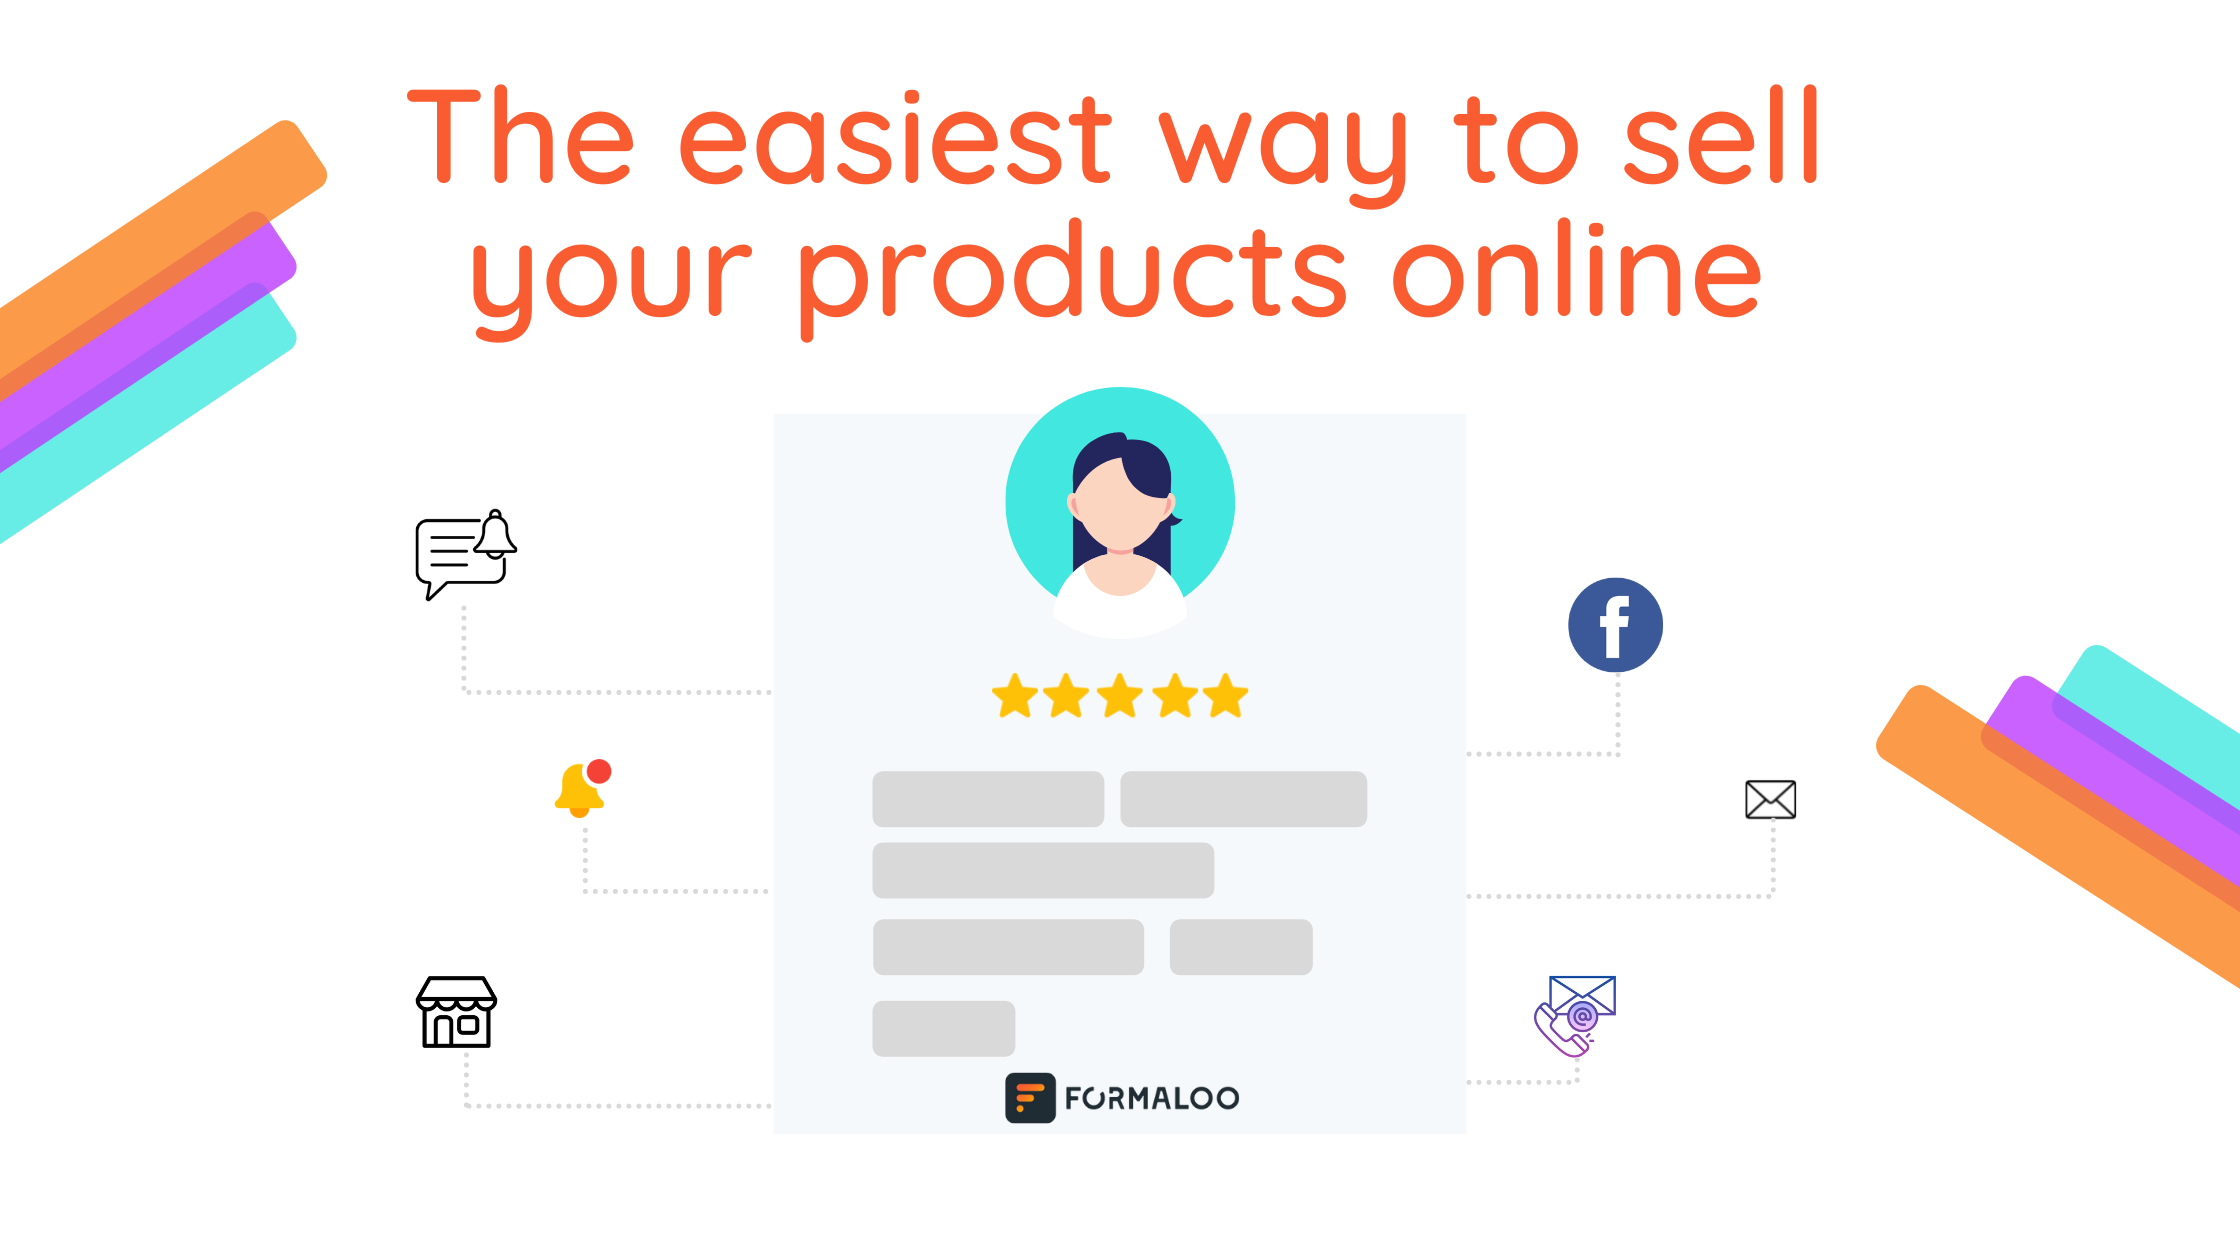 The easiest way to sell your products online